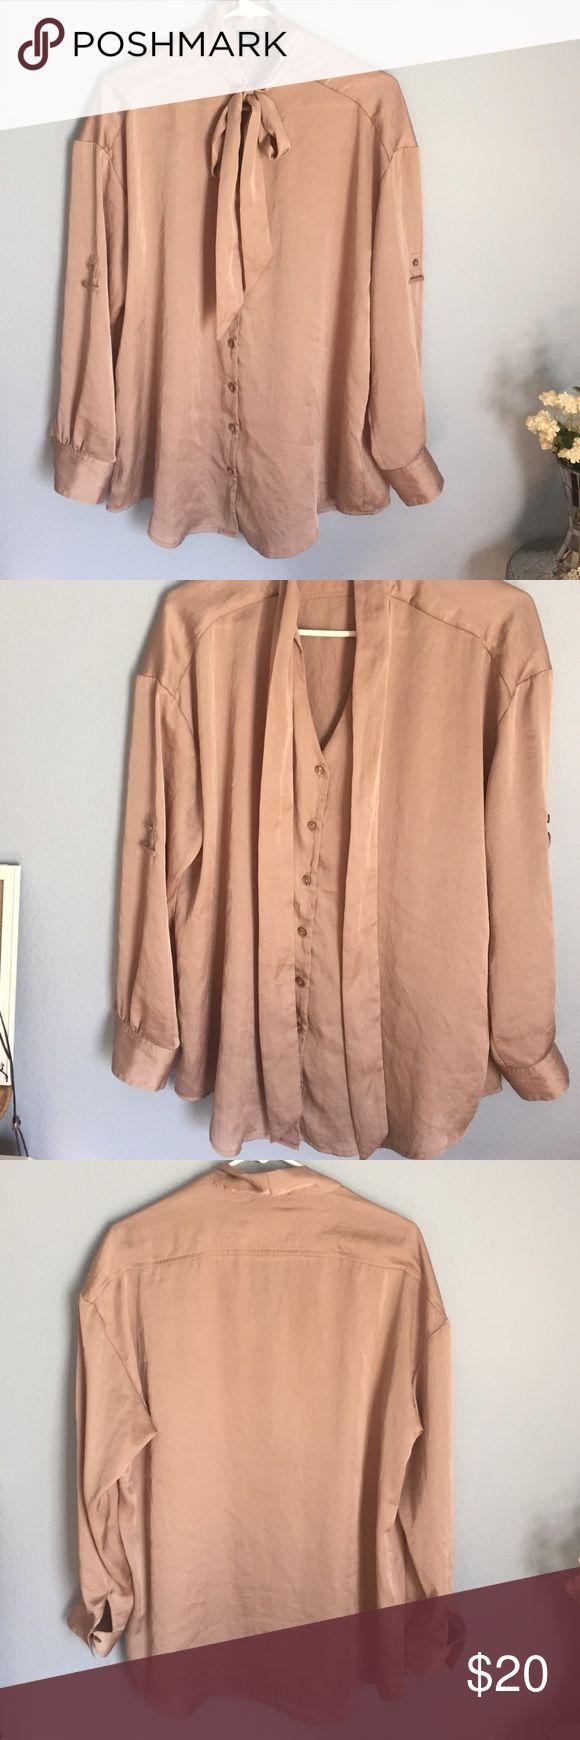 Gold Rose Express Long Sleeve Blouse Worn once small size runs big will fit a medium and a large size Express Tops Blouses